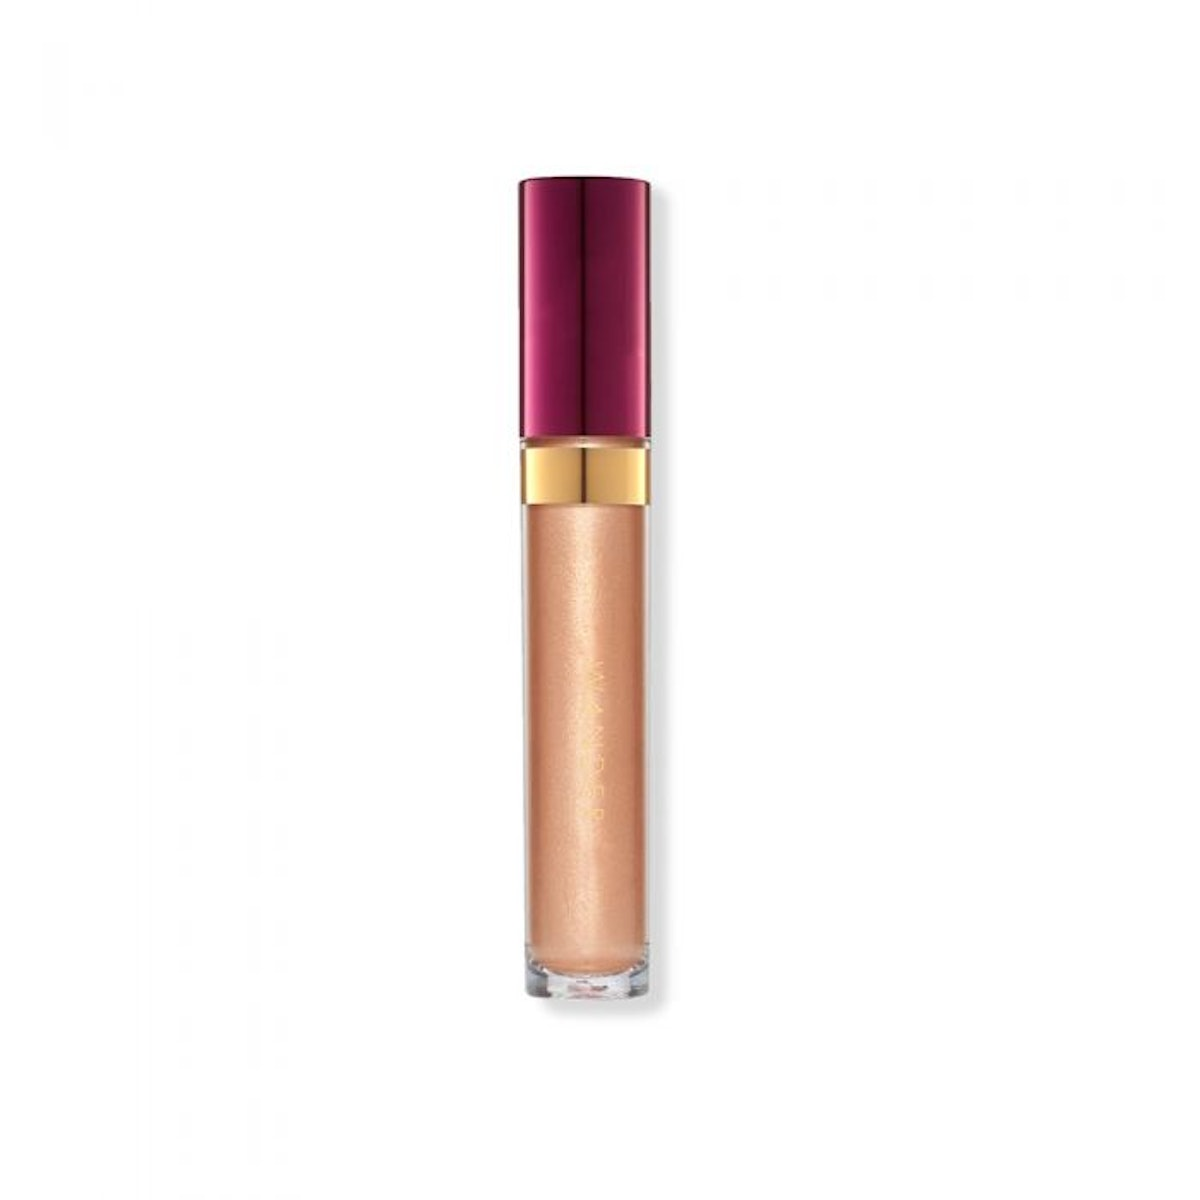 Exquisite Eye Liquid Shadow in Champagne Falls